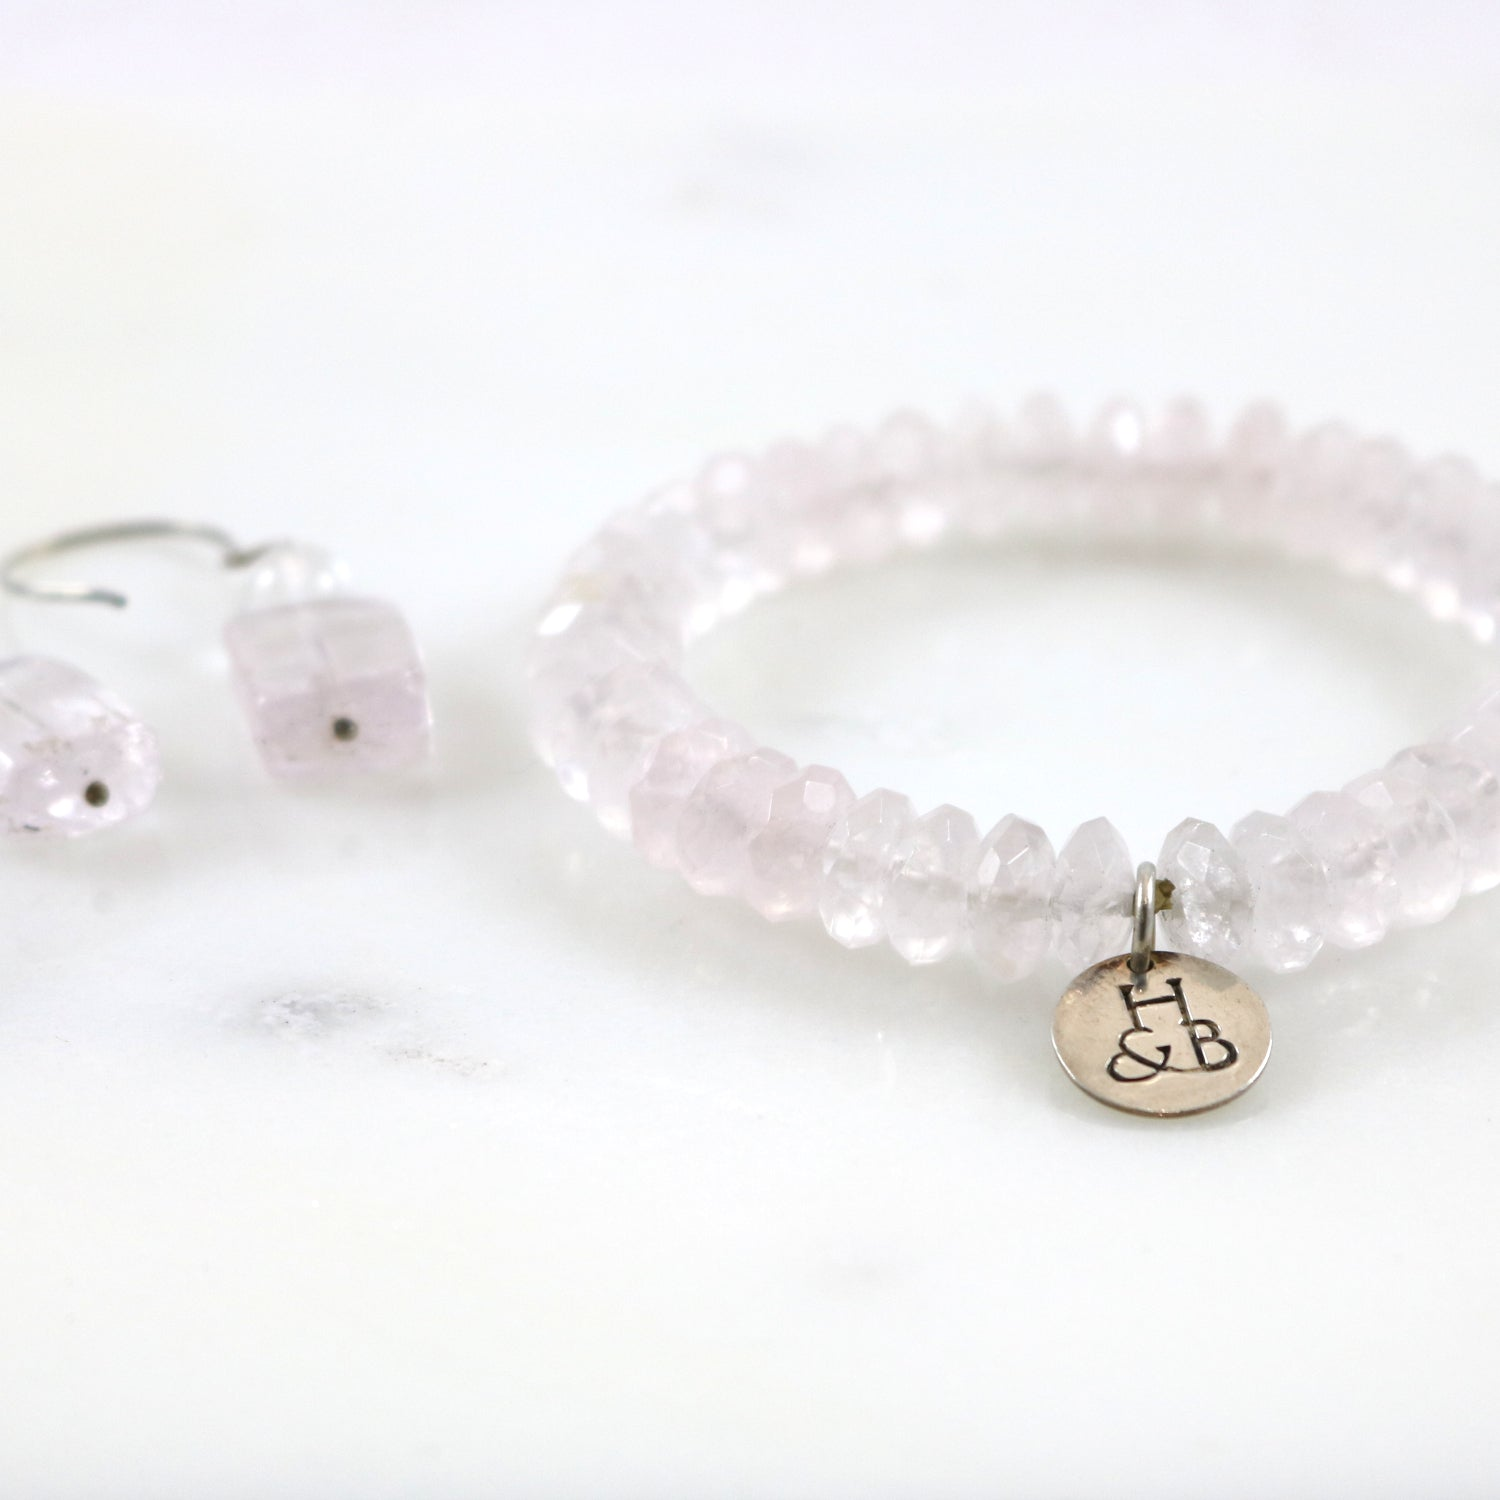 Quartz Bracelet & Earrings Set